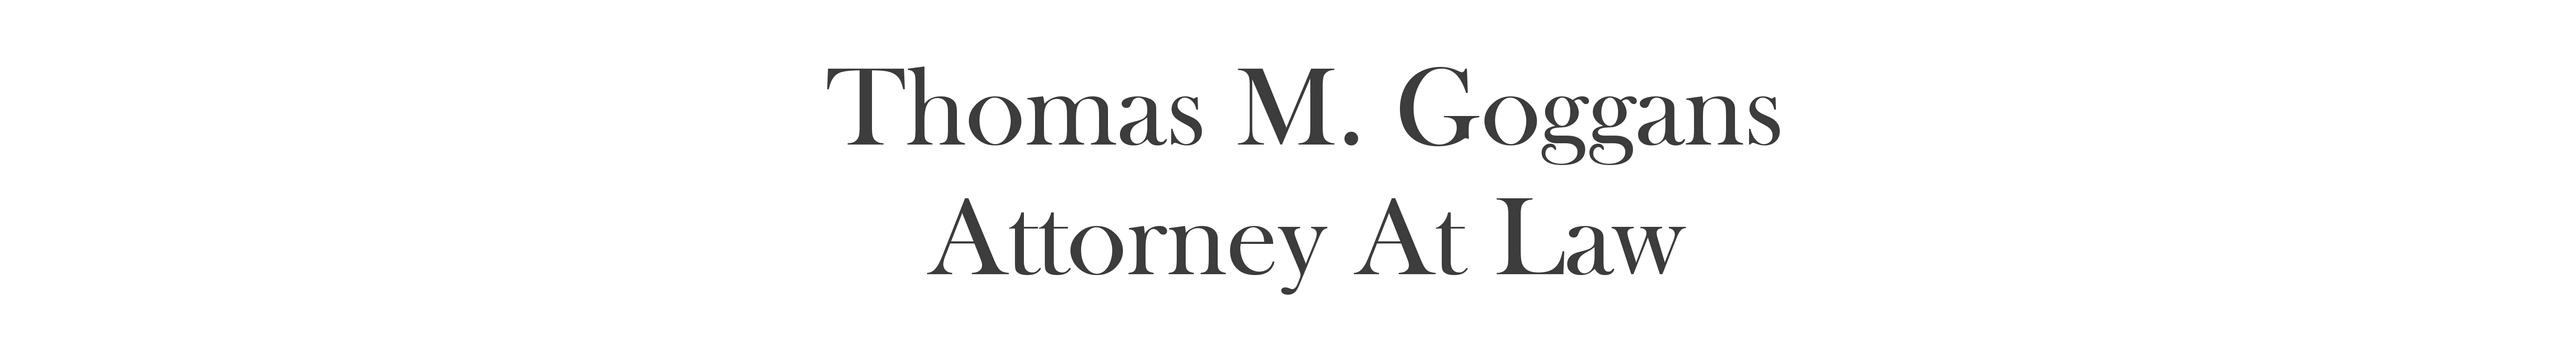 Thomas M. Goggans Attorney At Law